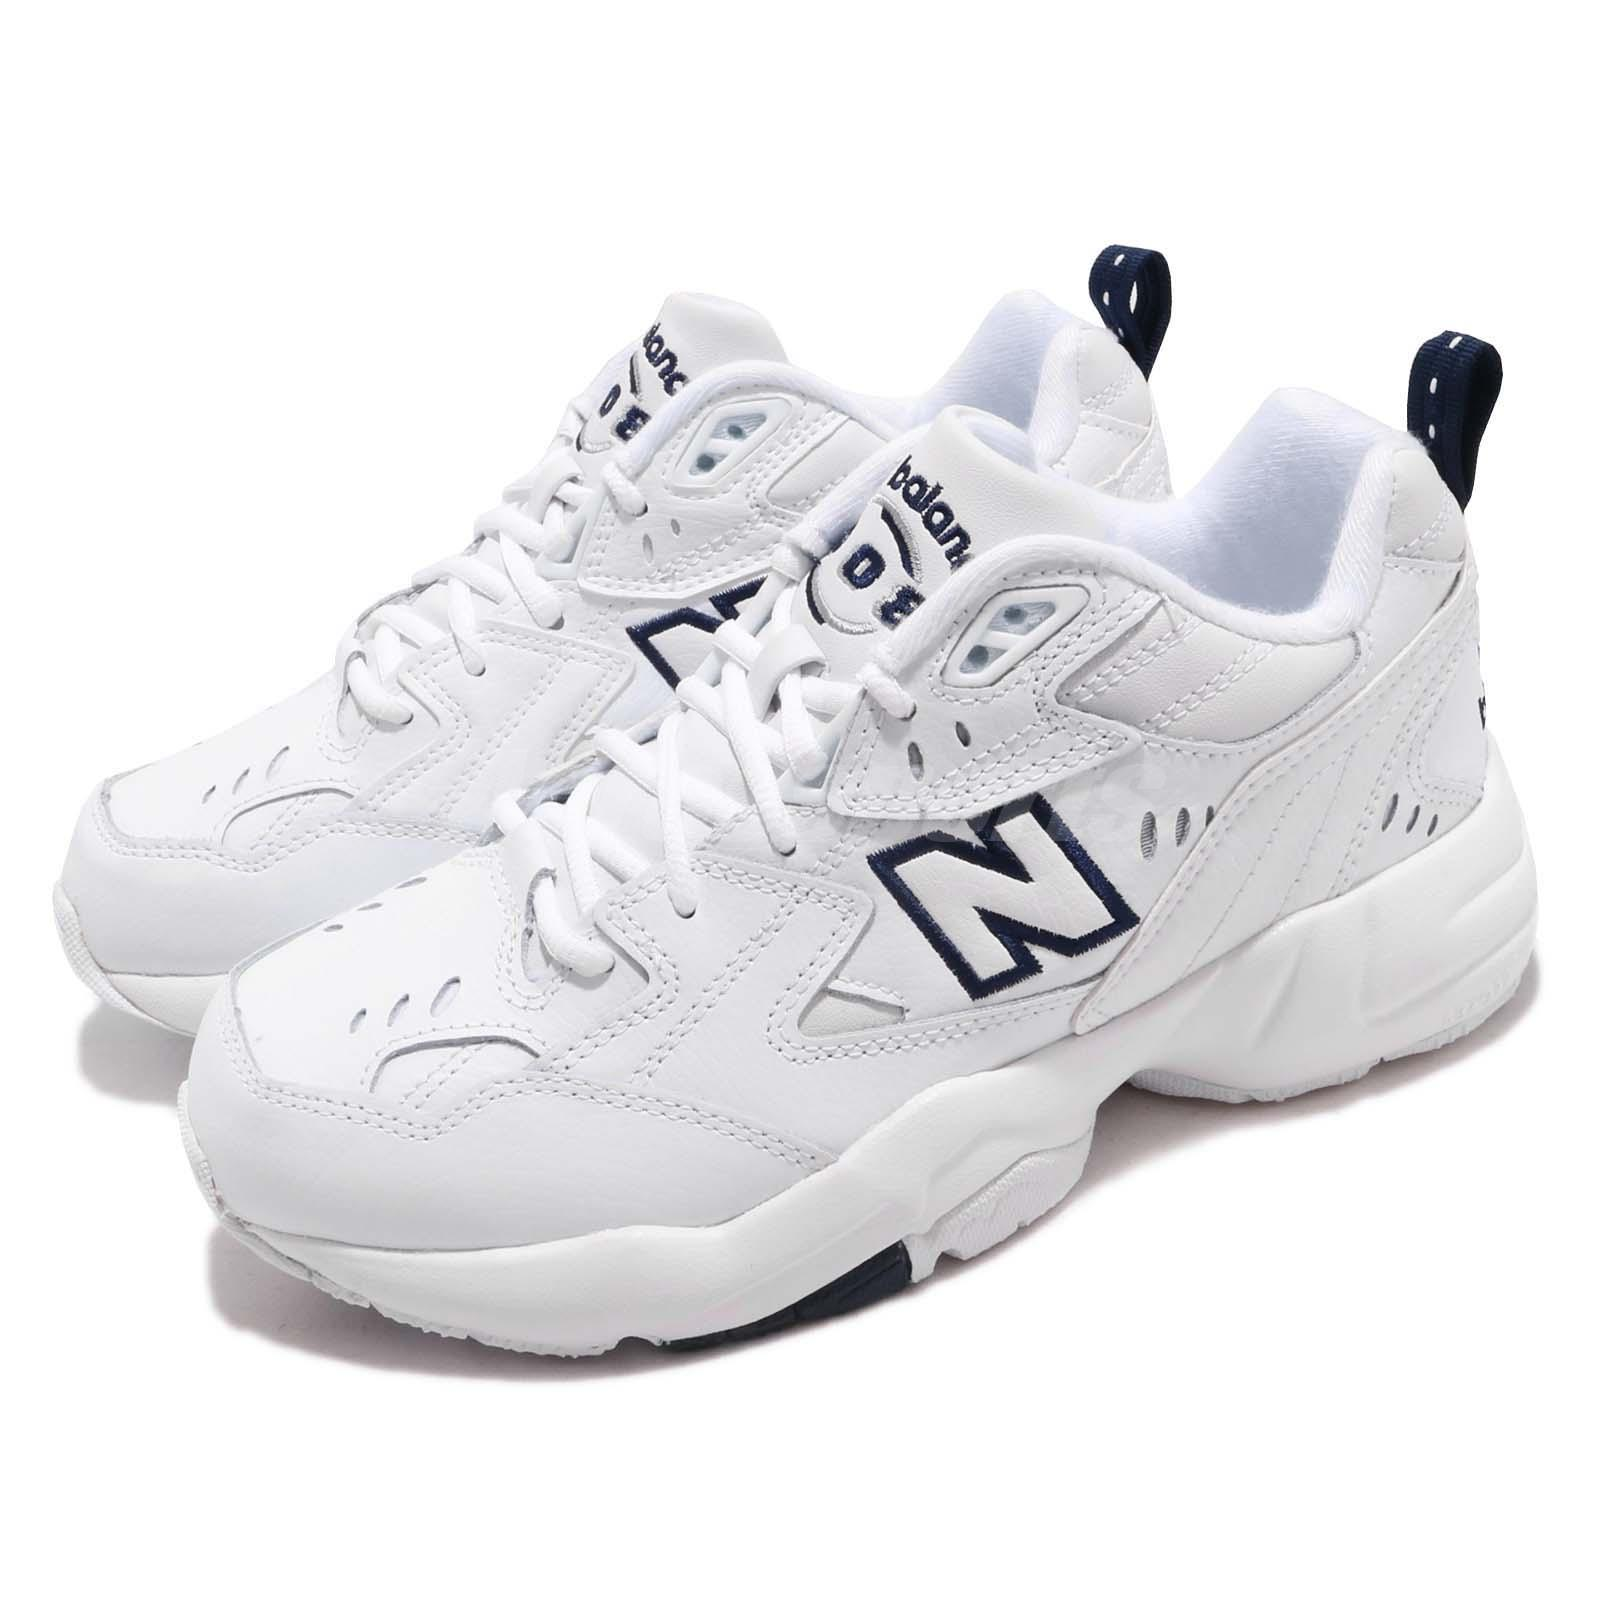 new balance dad sneakers, OFF 74%,Best